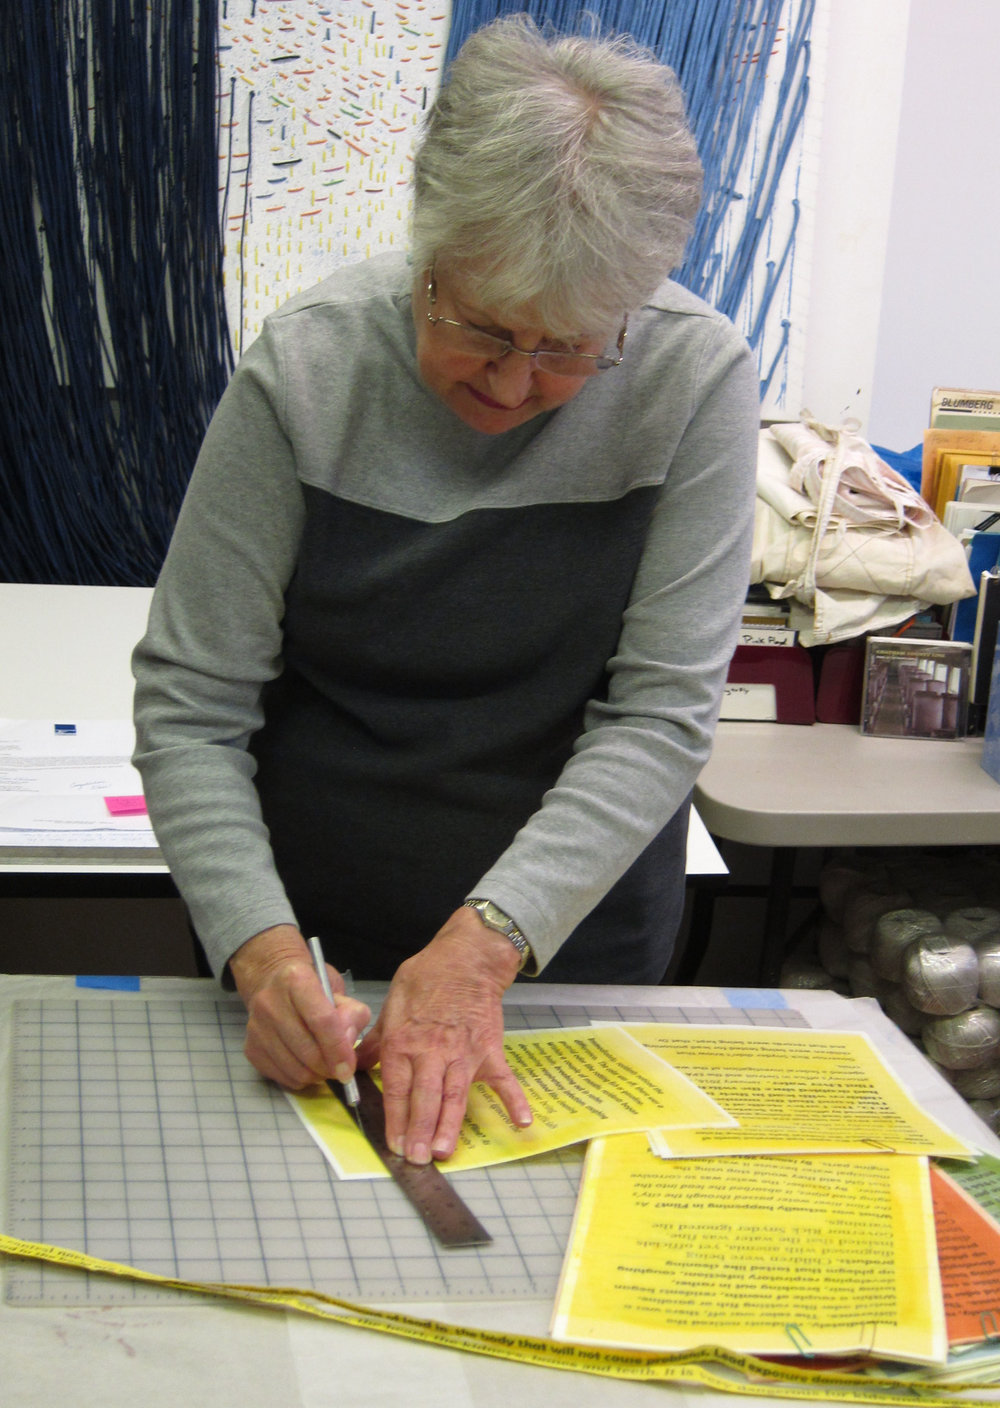 Elaine Longtemps cutting fabric strips for new work.